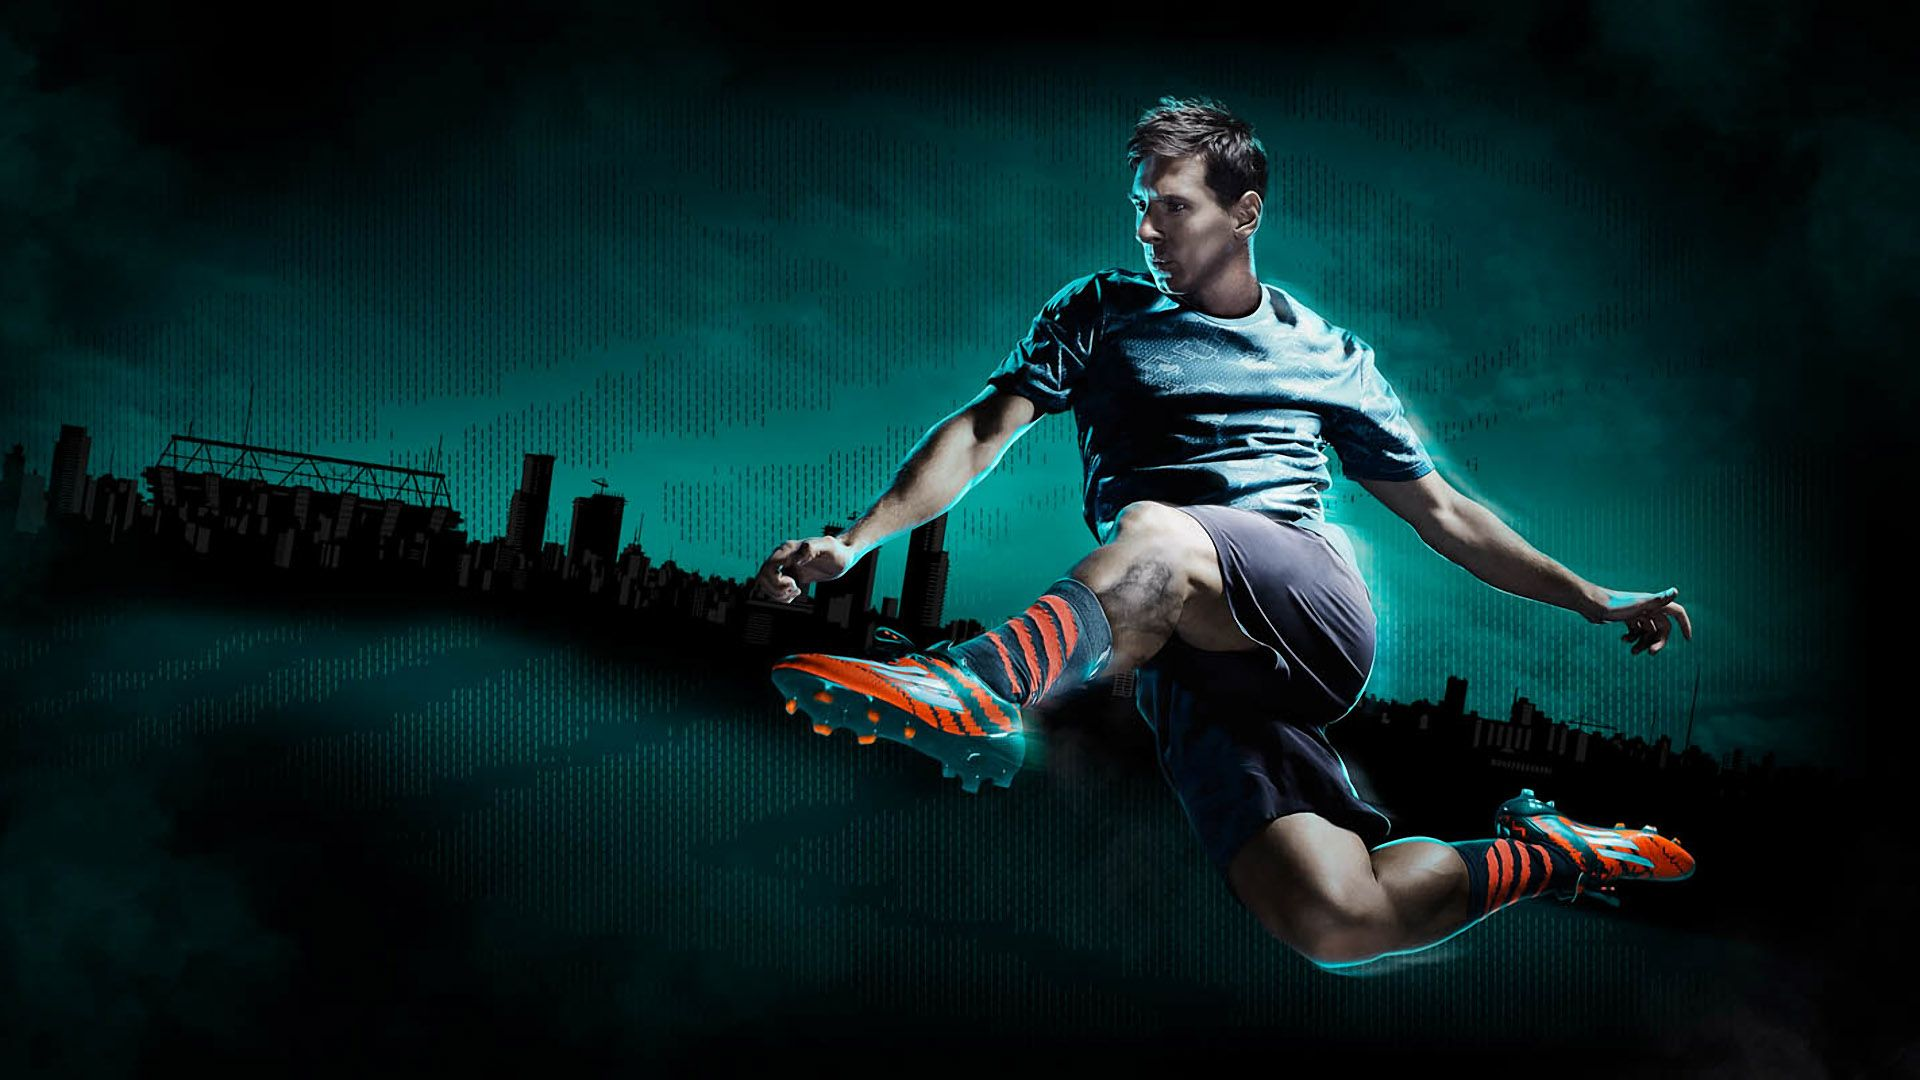 Image for Adidas Soccer Wallpaper Desktop  7yhd2  6c07ed5d7f644